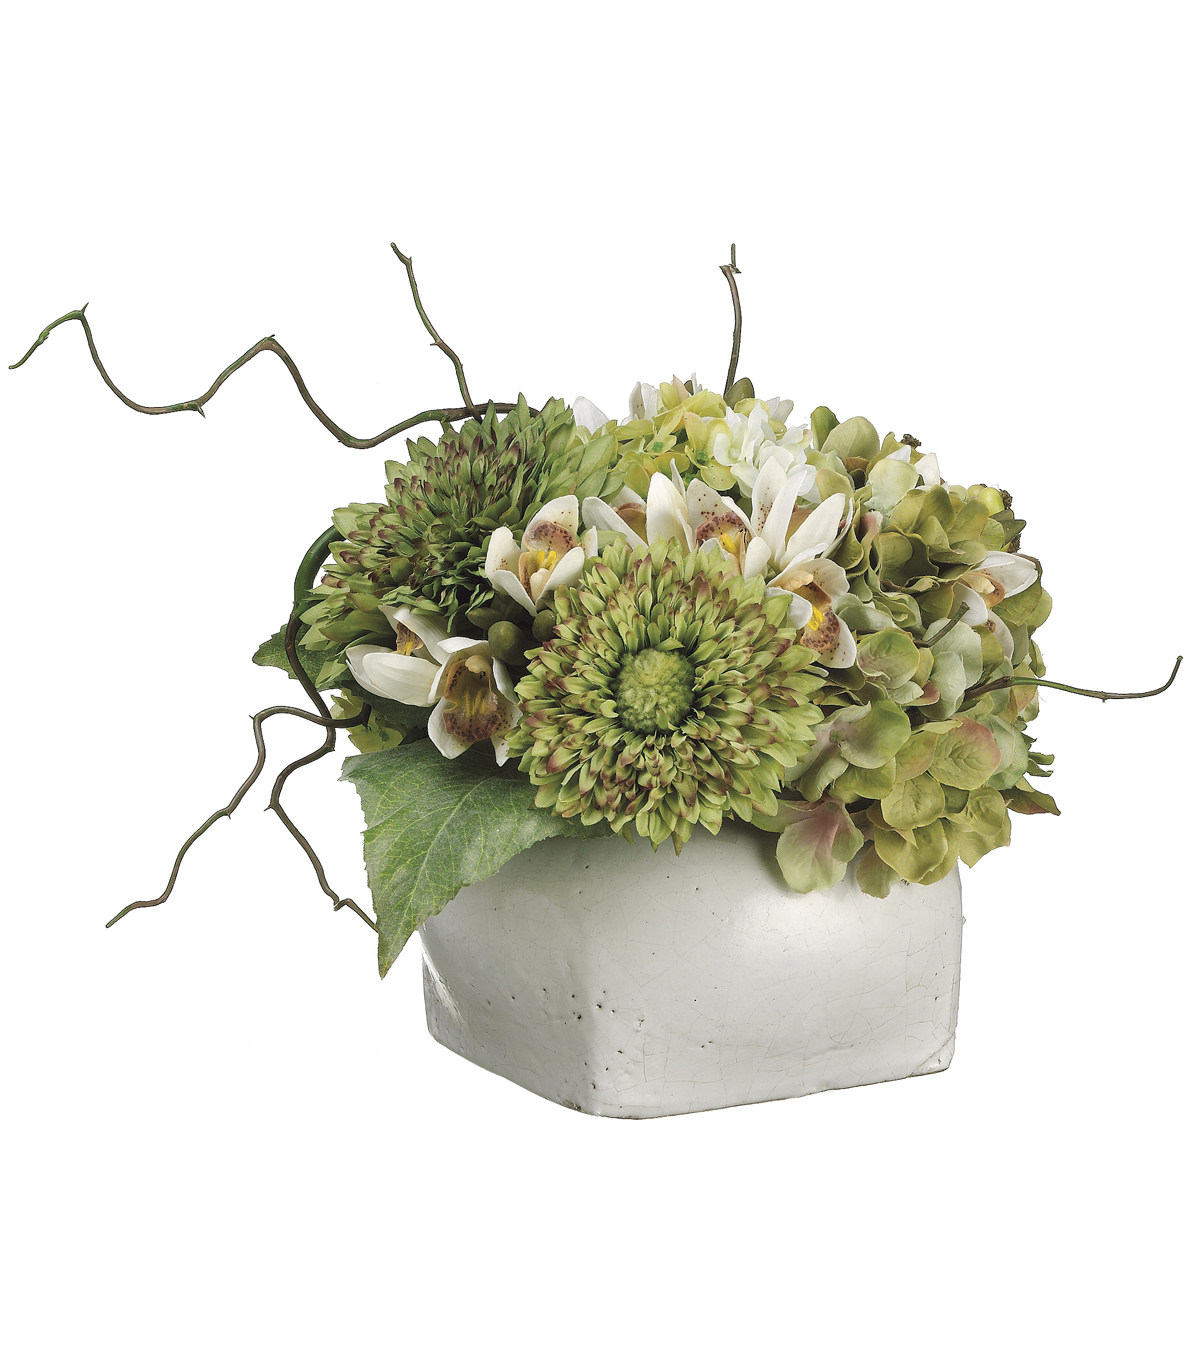 Bloom Room Luxe 12\u0027\u0027 Sunflower, Hydrangea, Cymbidium Orchid In Pot-Green